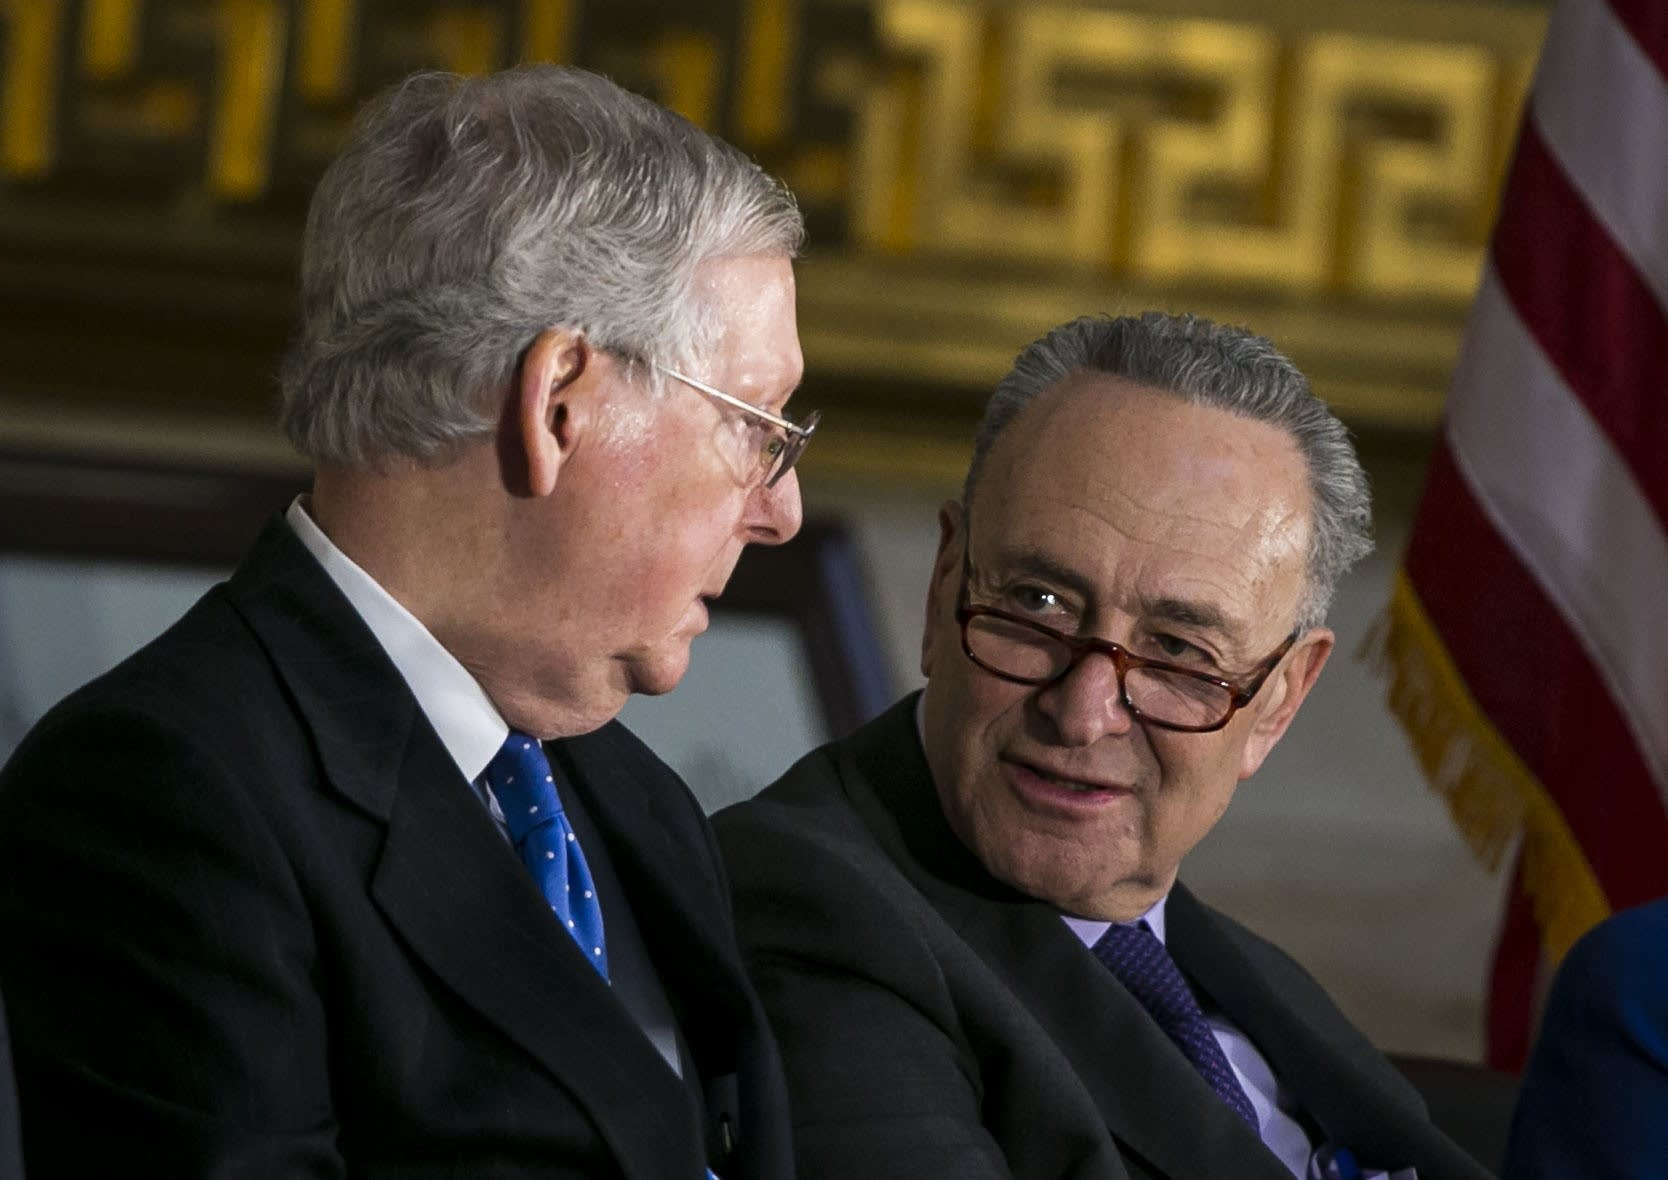 Senate leaders announce 2-year budget deal to avoid government shutdown